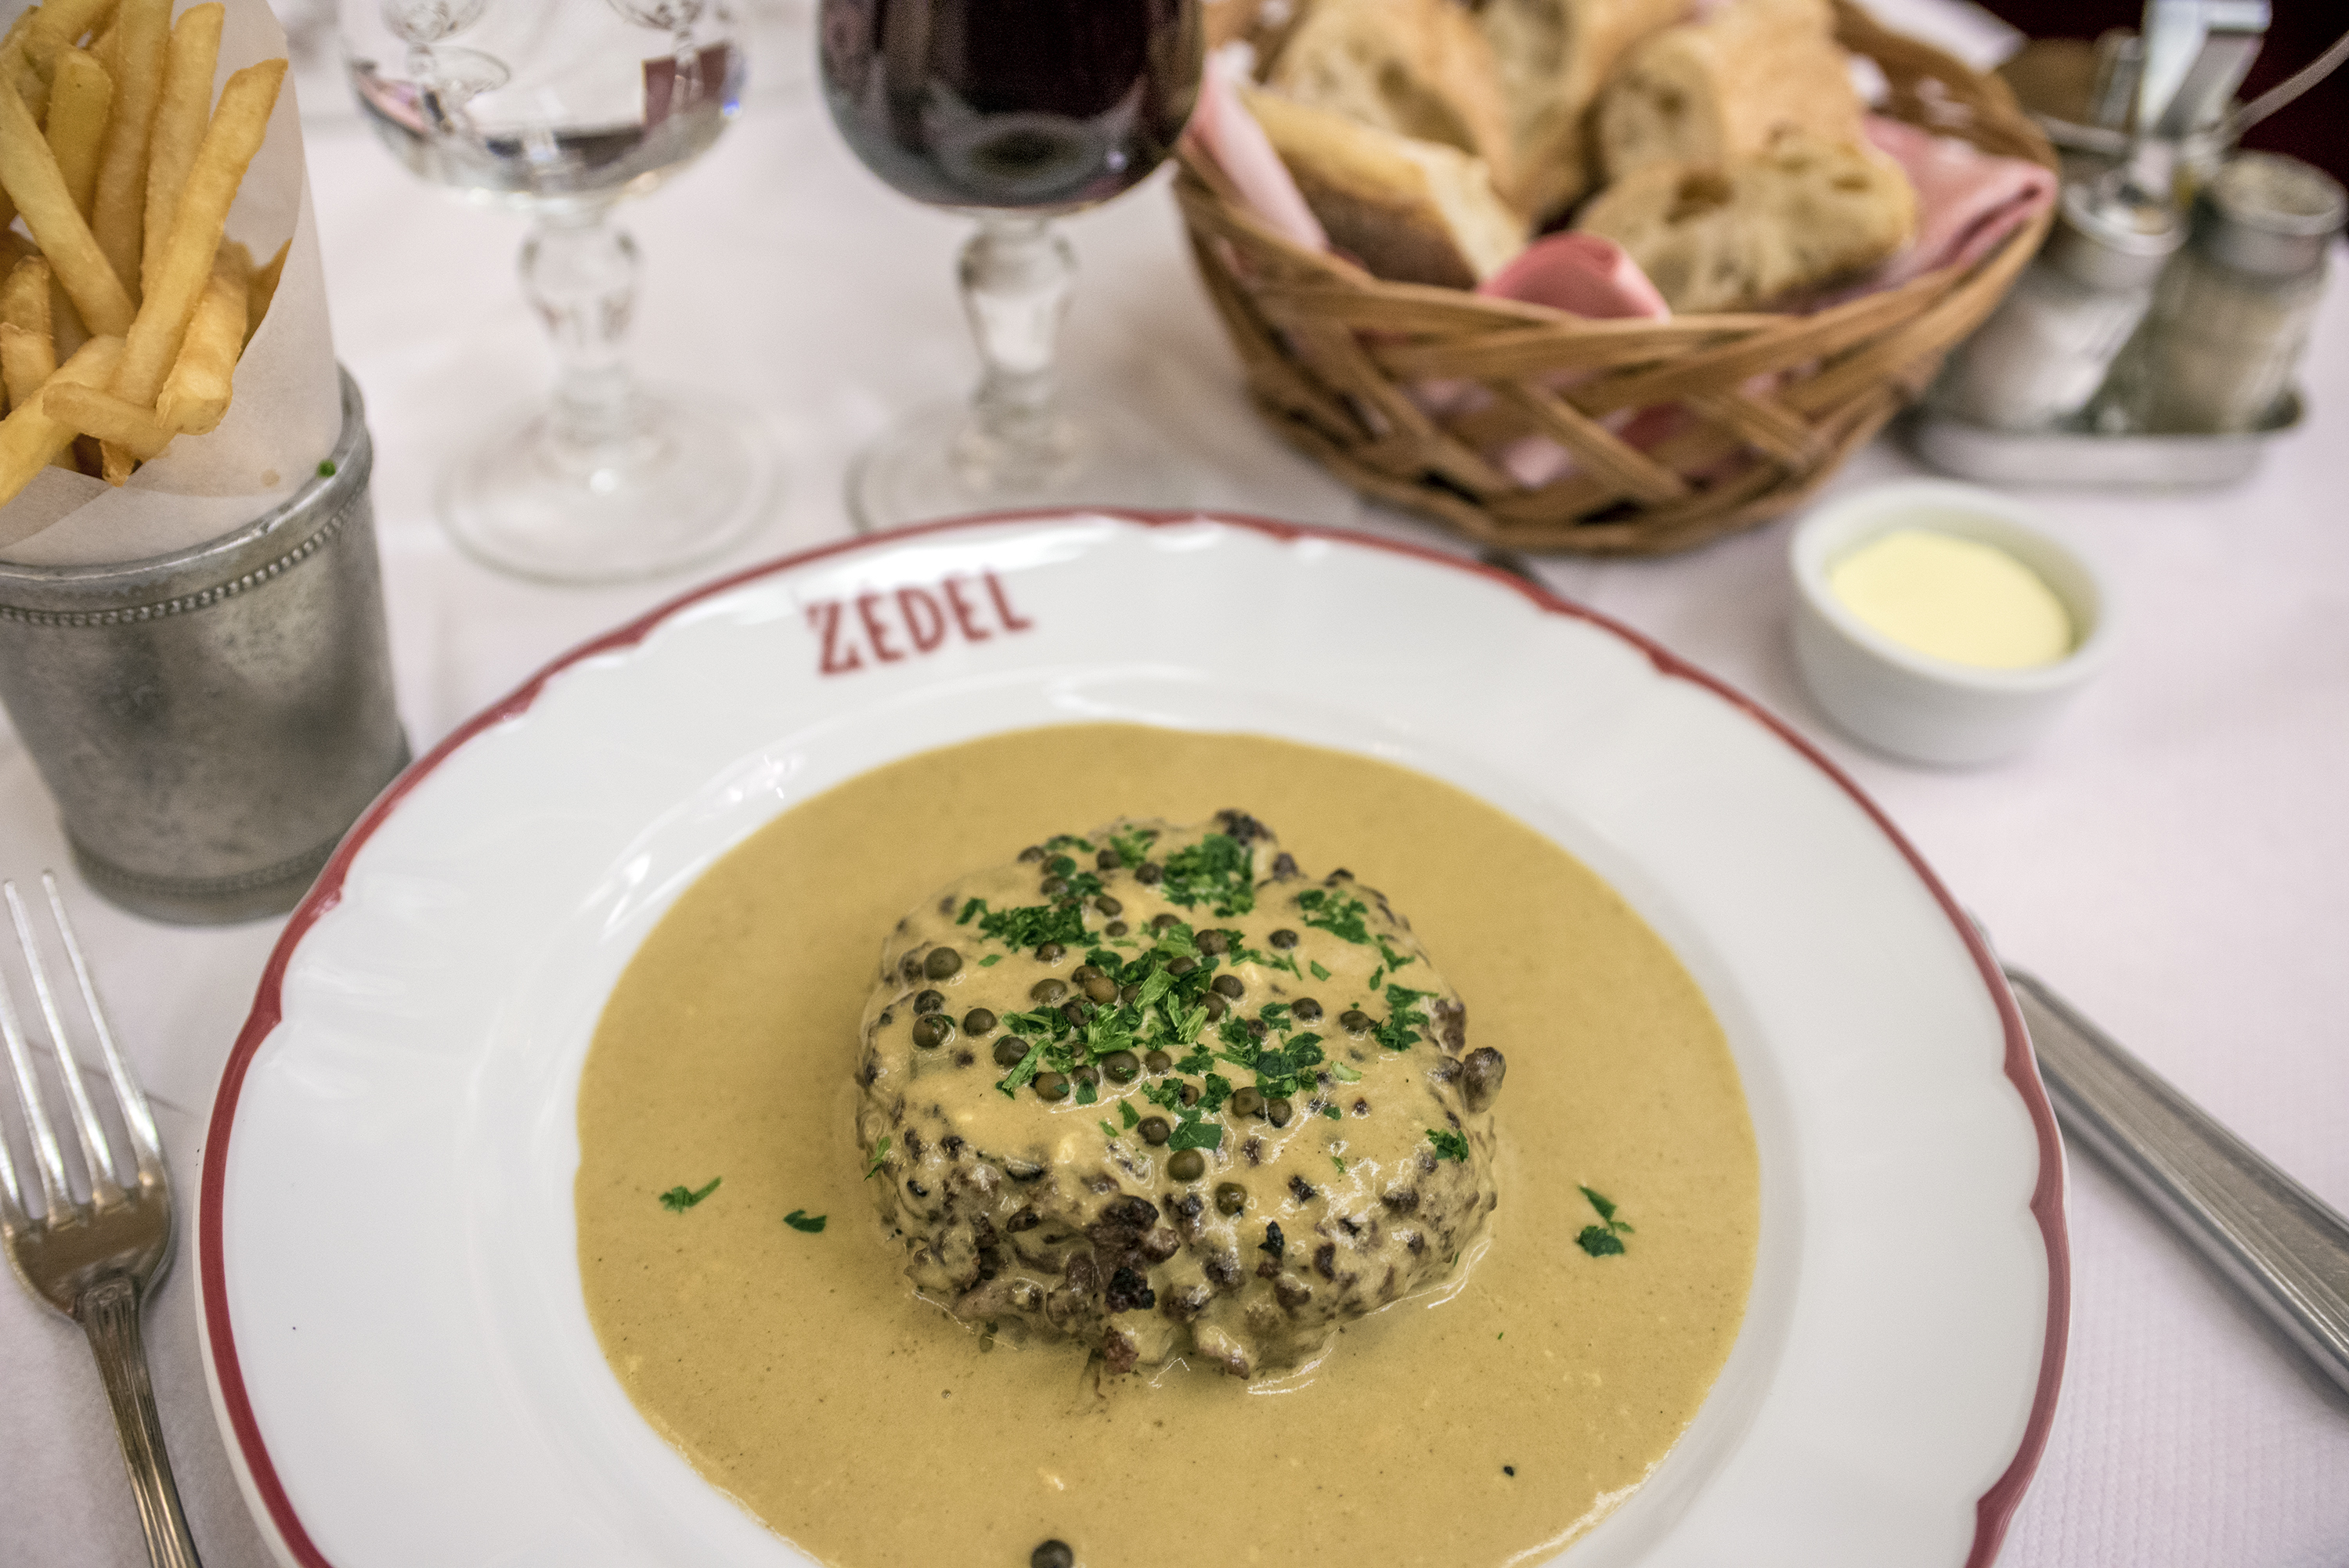 Zedel-Steak-Haché